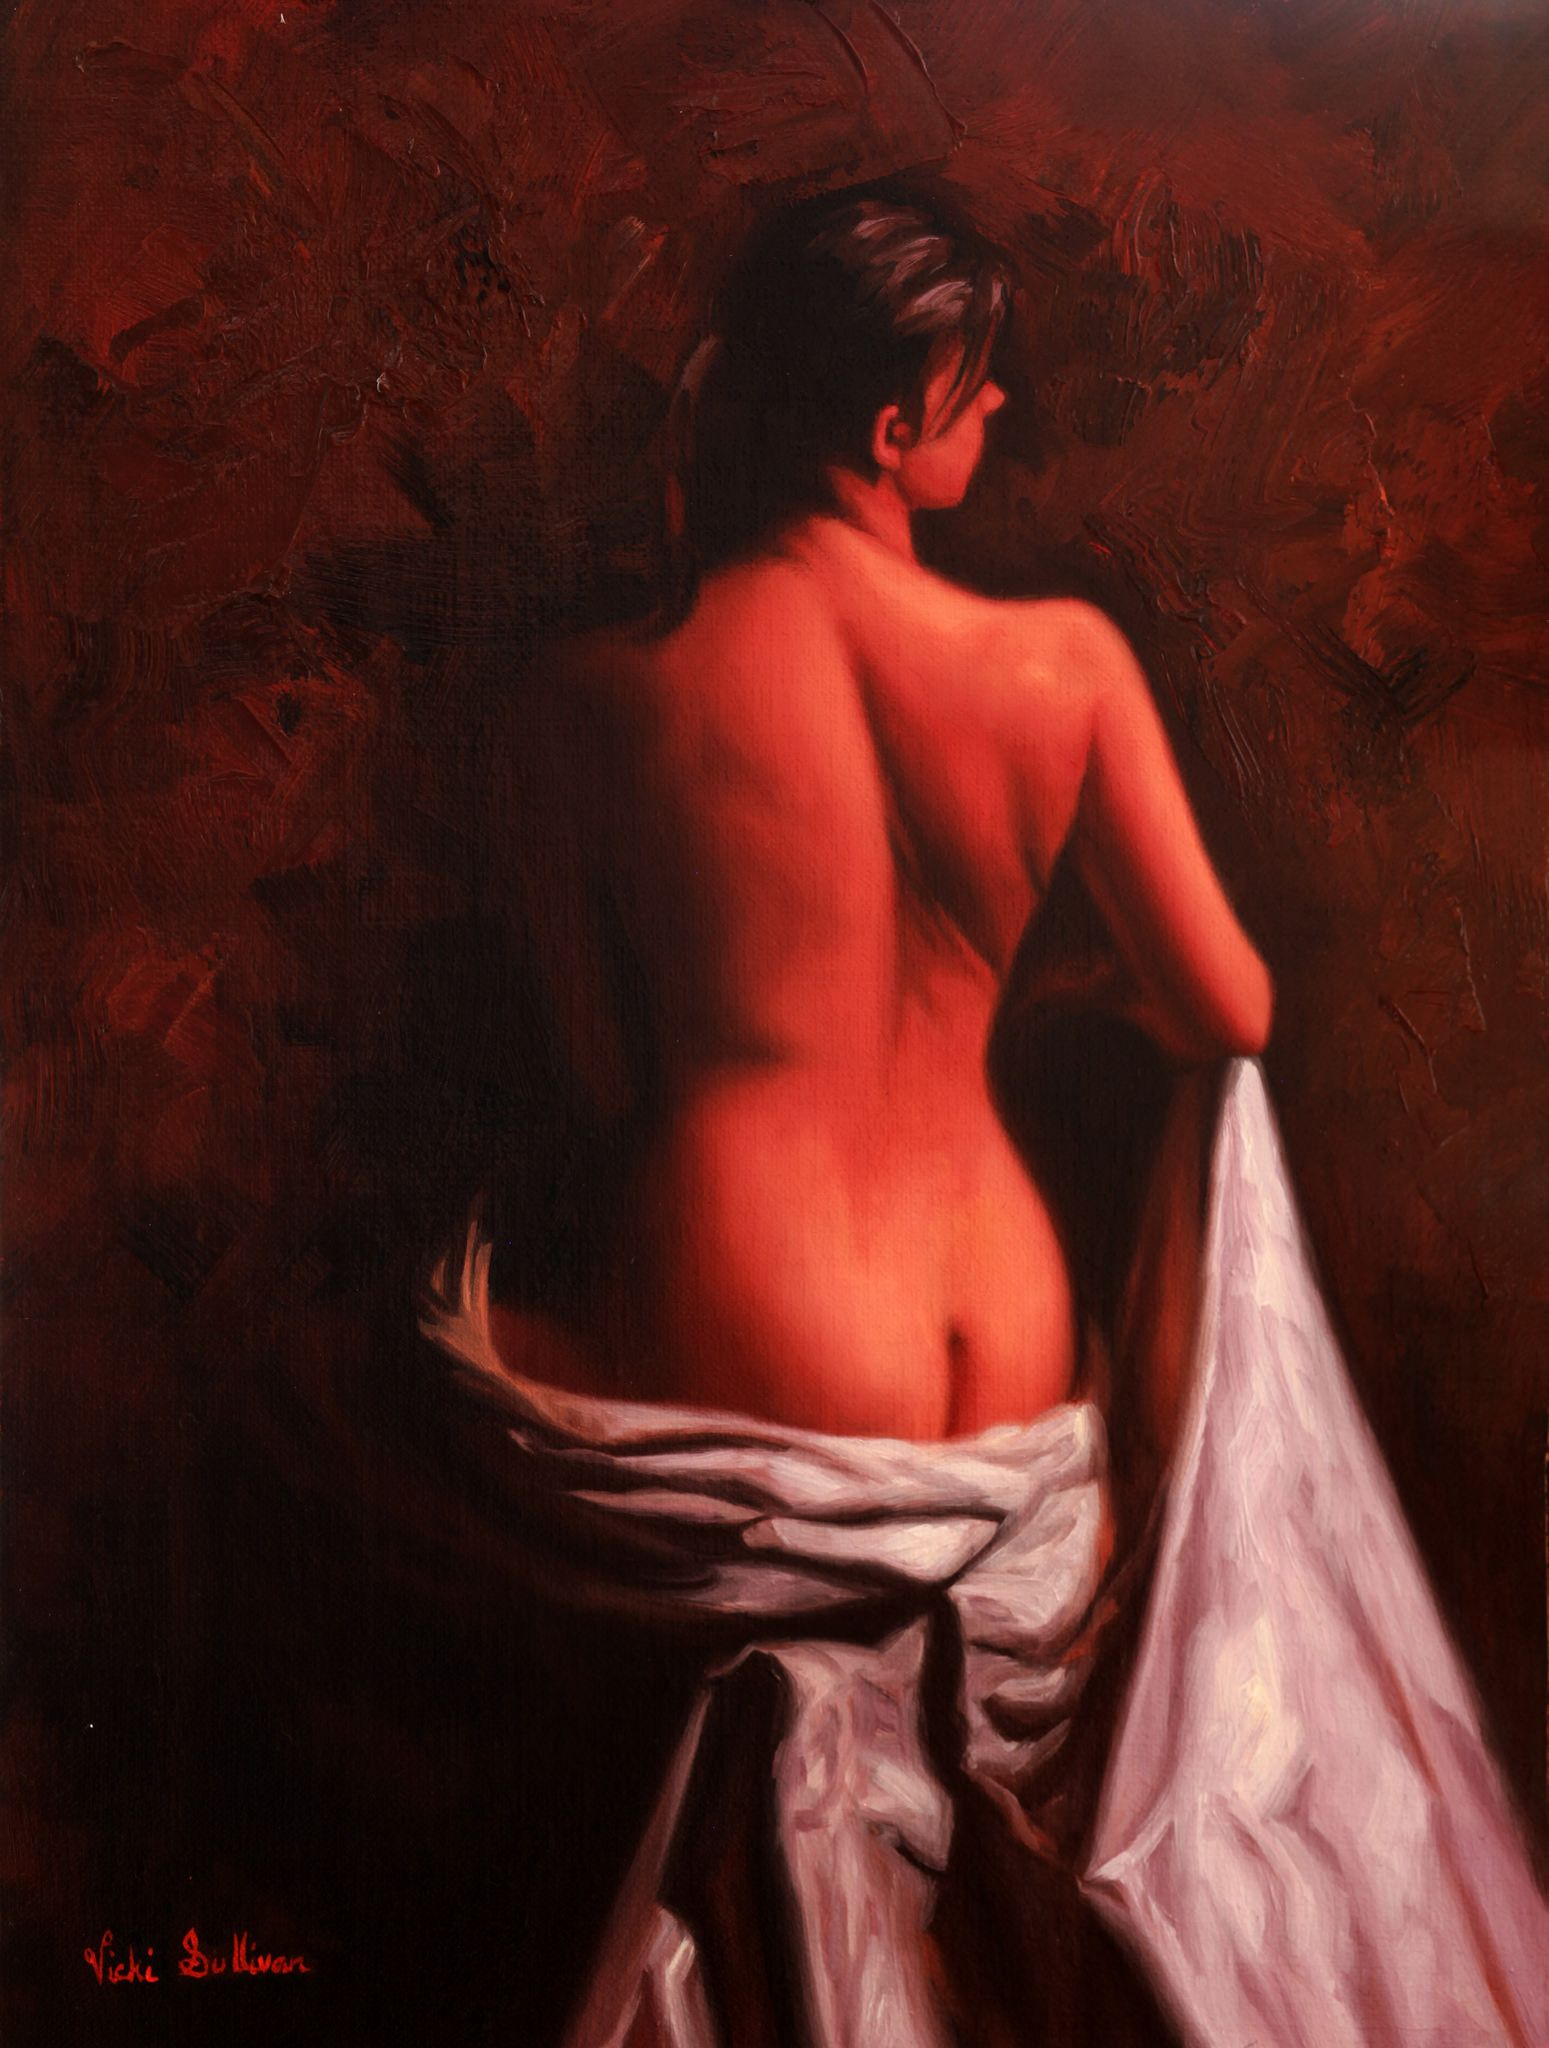 https://flic.kr/p/NB8XmH | Seated Nude by Vicki Sullivan www.vickisullivan.com | Seated Nude#oilonlinen#portrait#Australianportraitartist#Melbourneartist#Morningtonpeninsulaartist#contemporyrealism#figurativepainting#portraitart#commissionaportrait#portraitcommission#portraitbycommission